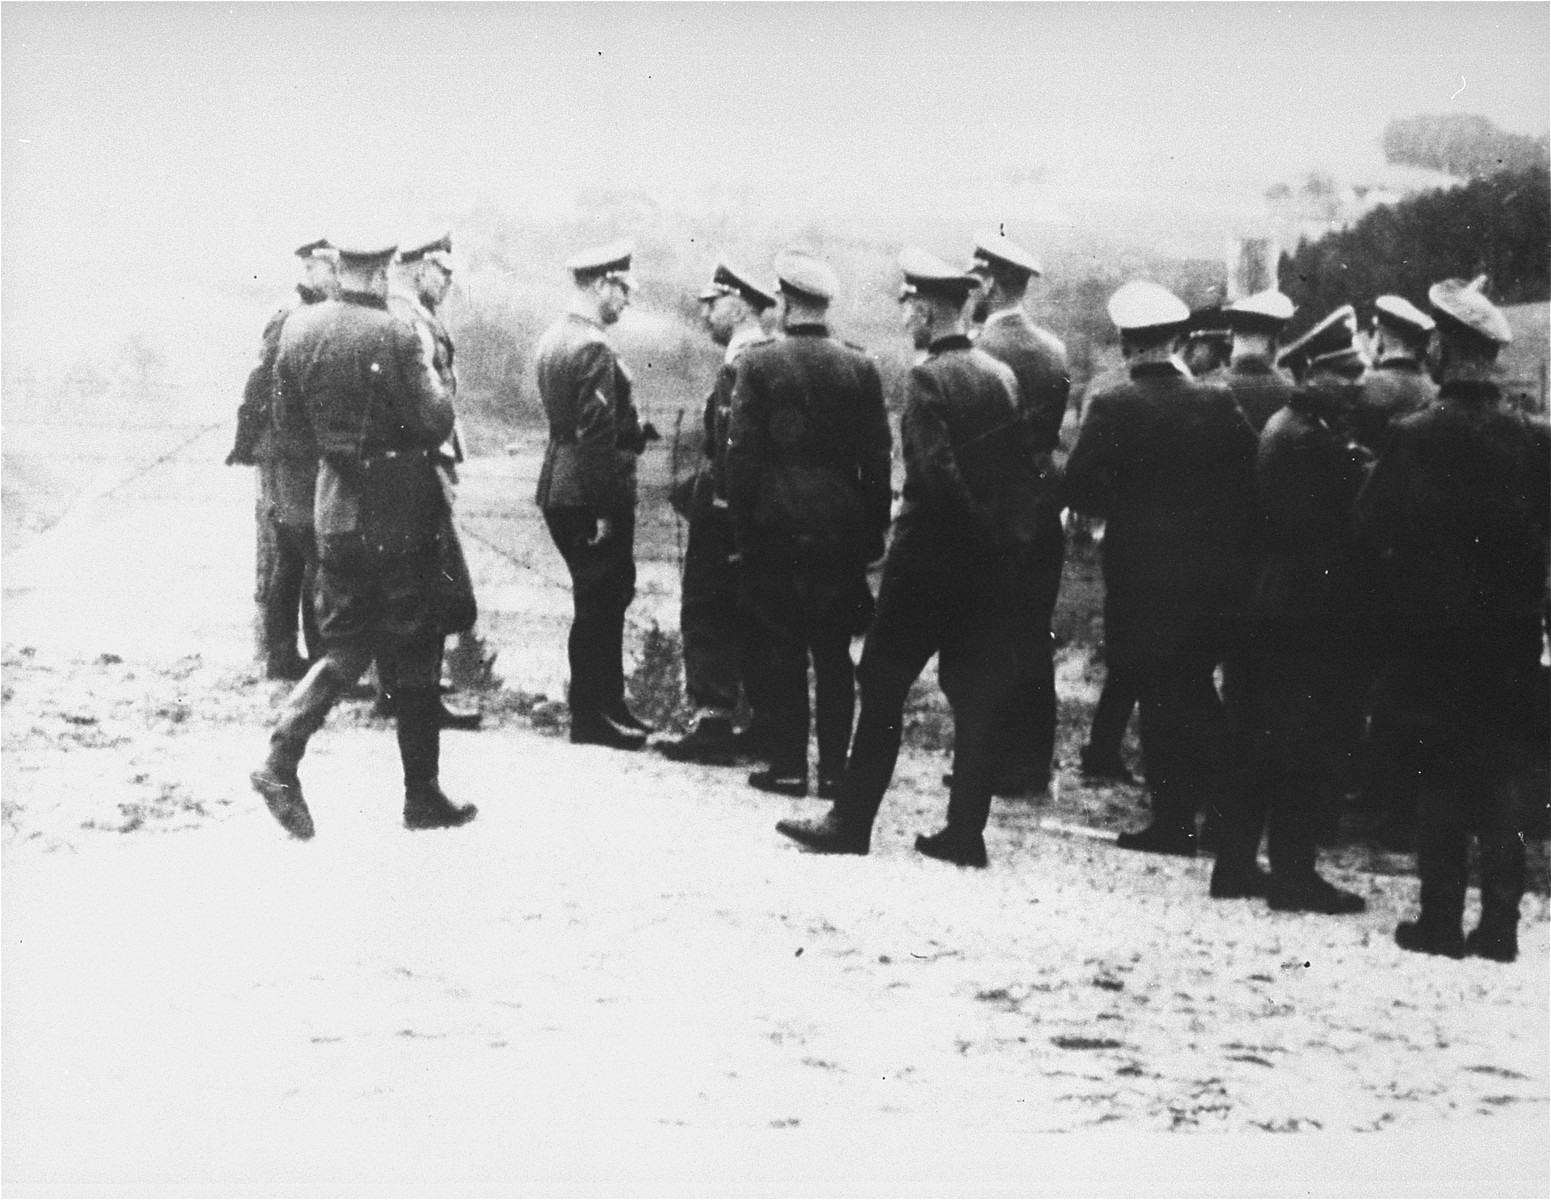 Reichsfuehrer SS Heinrich Himmler speaks to a member of his entourage while viewing the quarry during an inspection tour of the Mauthausen concentration camp.  Among those pictured are Heinrich Himmler, Ernst Kaltenbrunner and August Eigruber.